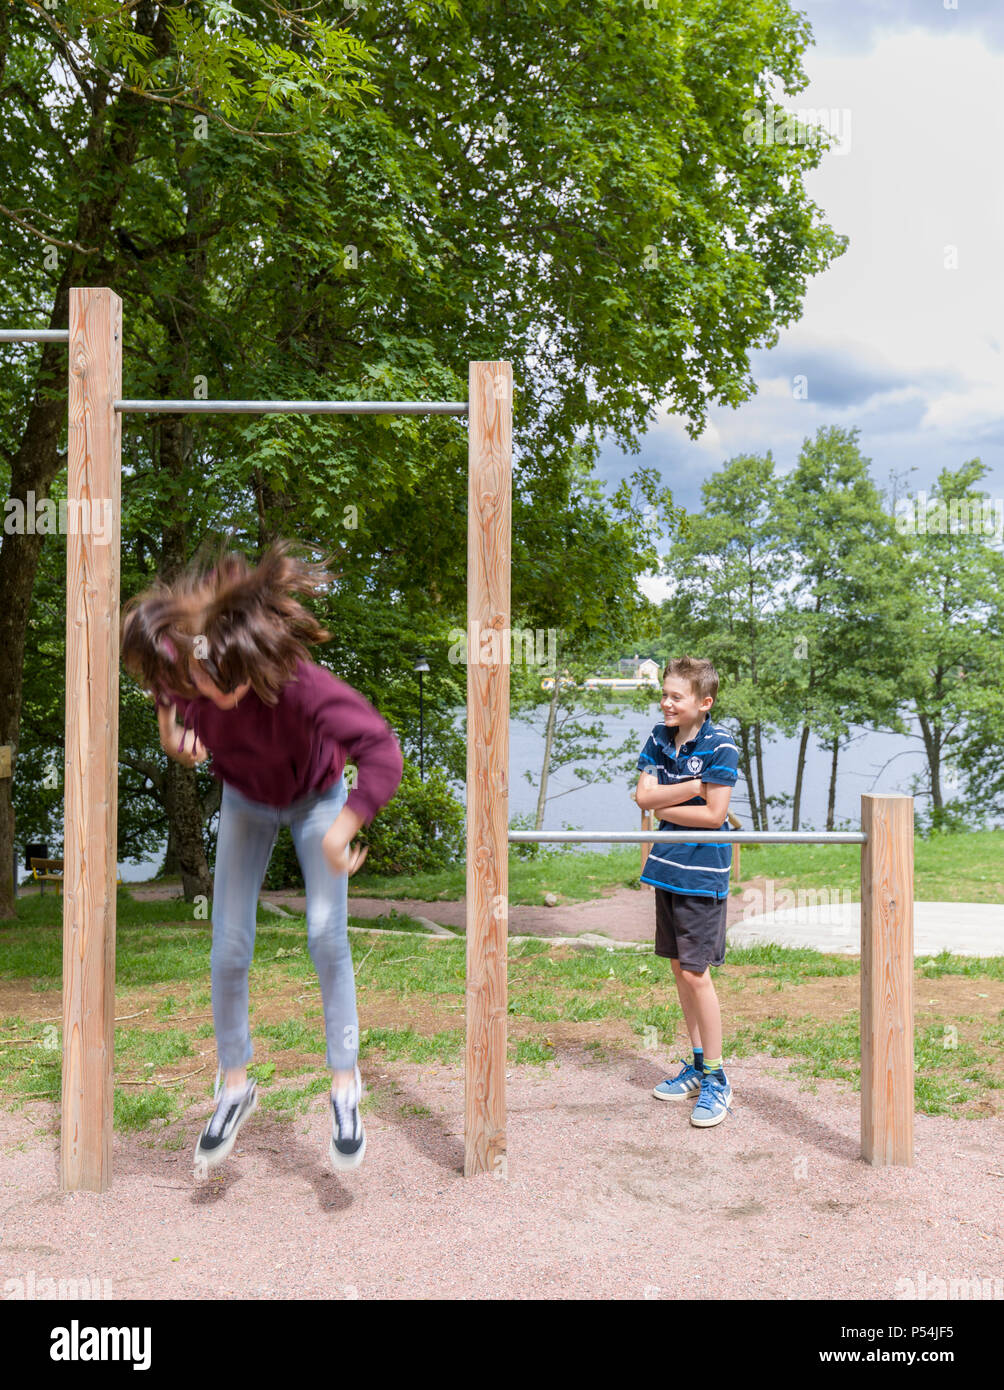 Teenage girl jumping off a crossbar in playpark whilst younger brother watching in awe - Stock Image